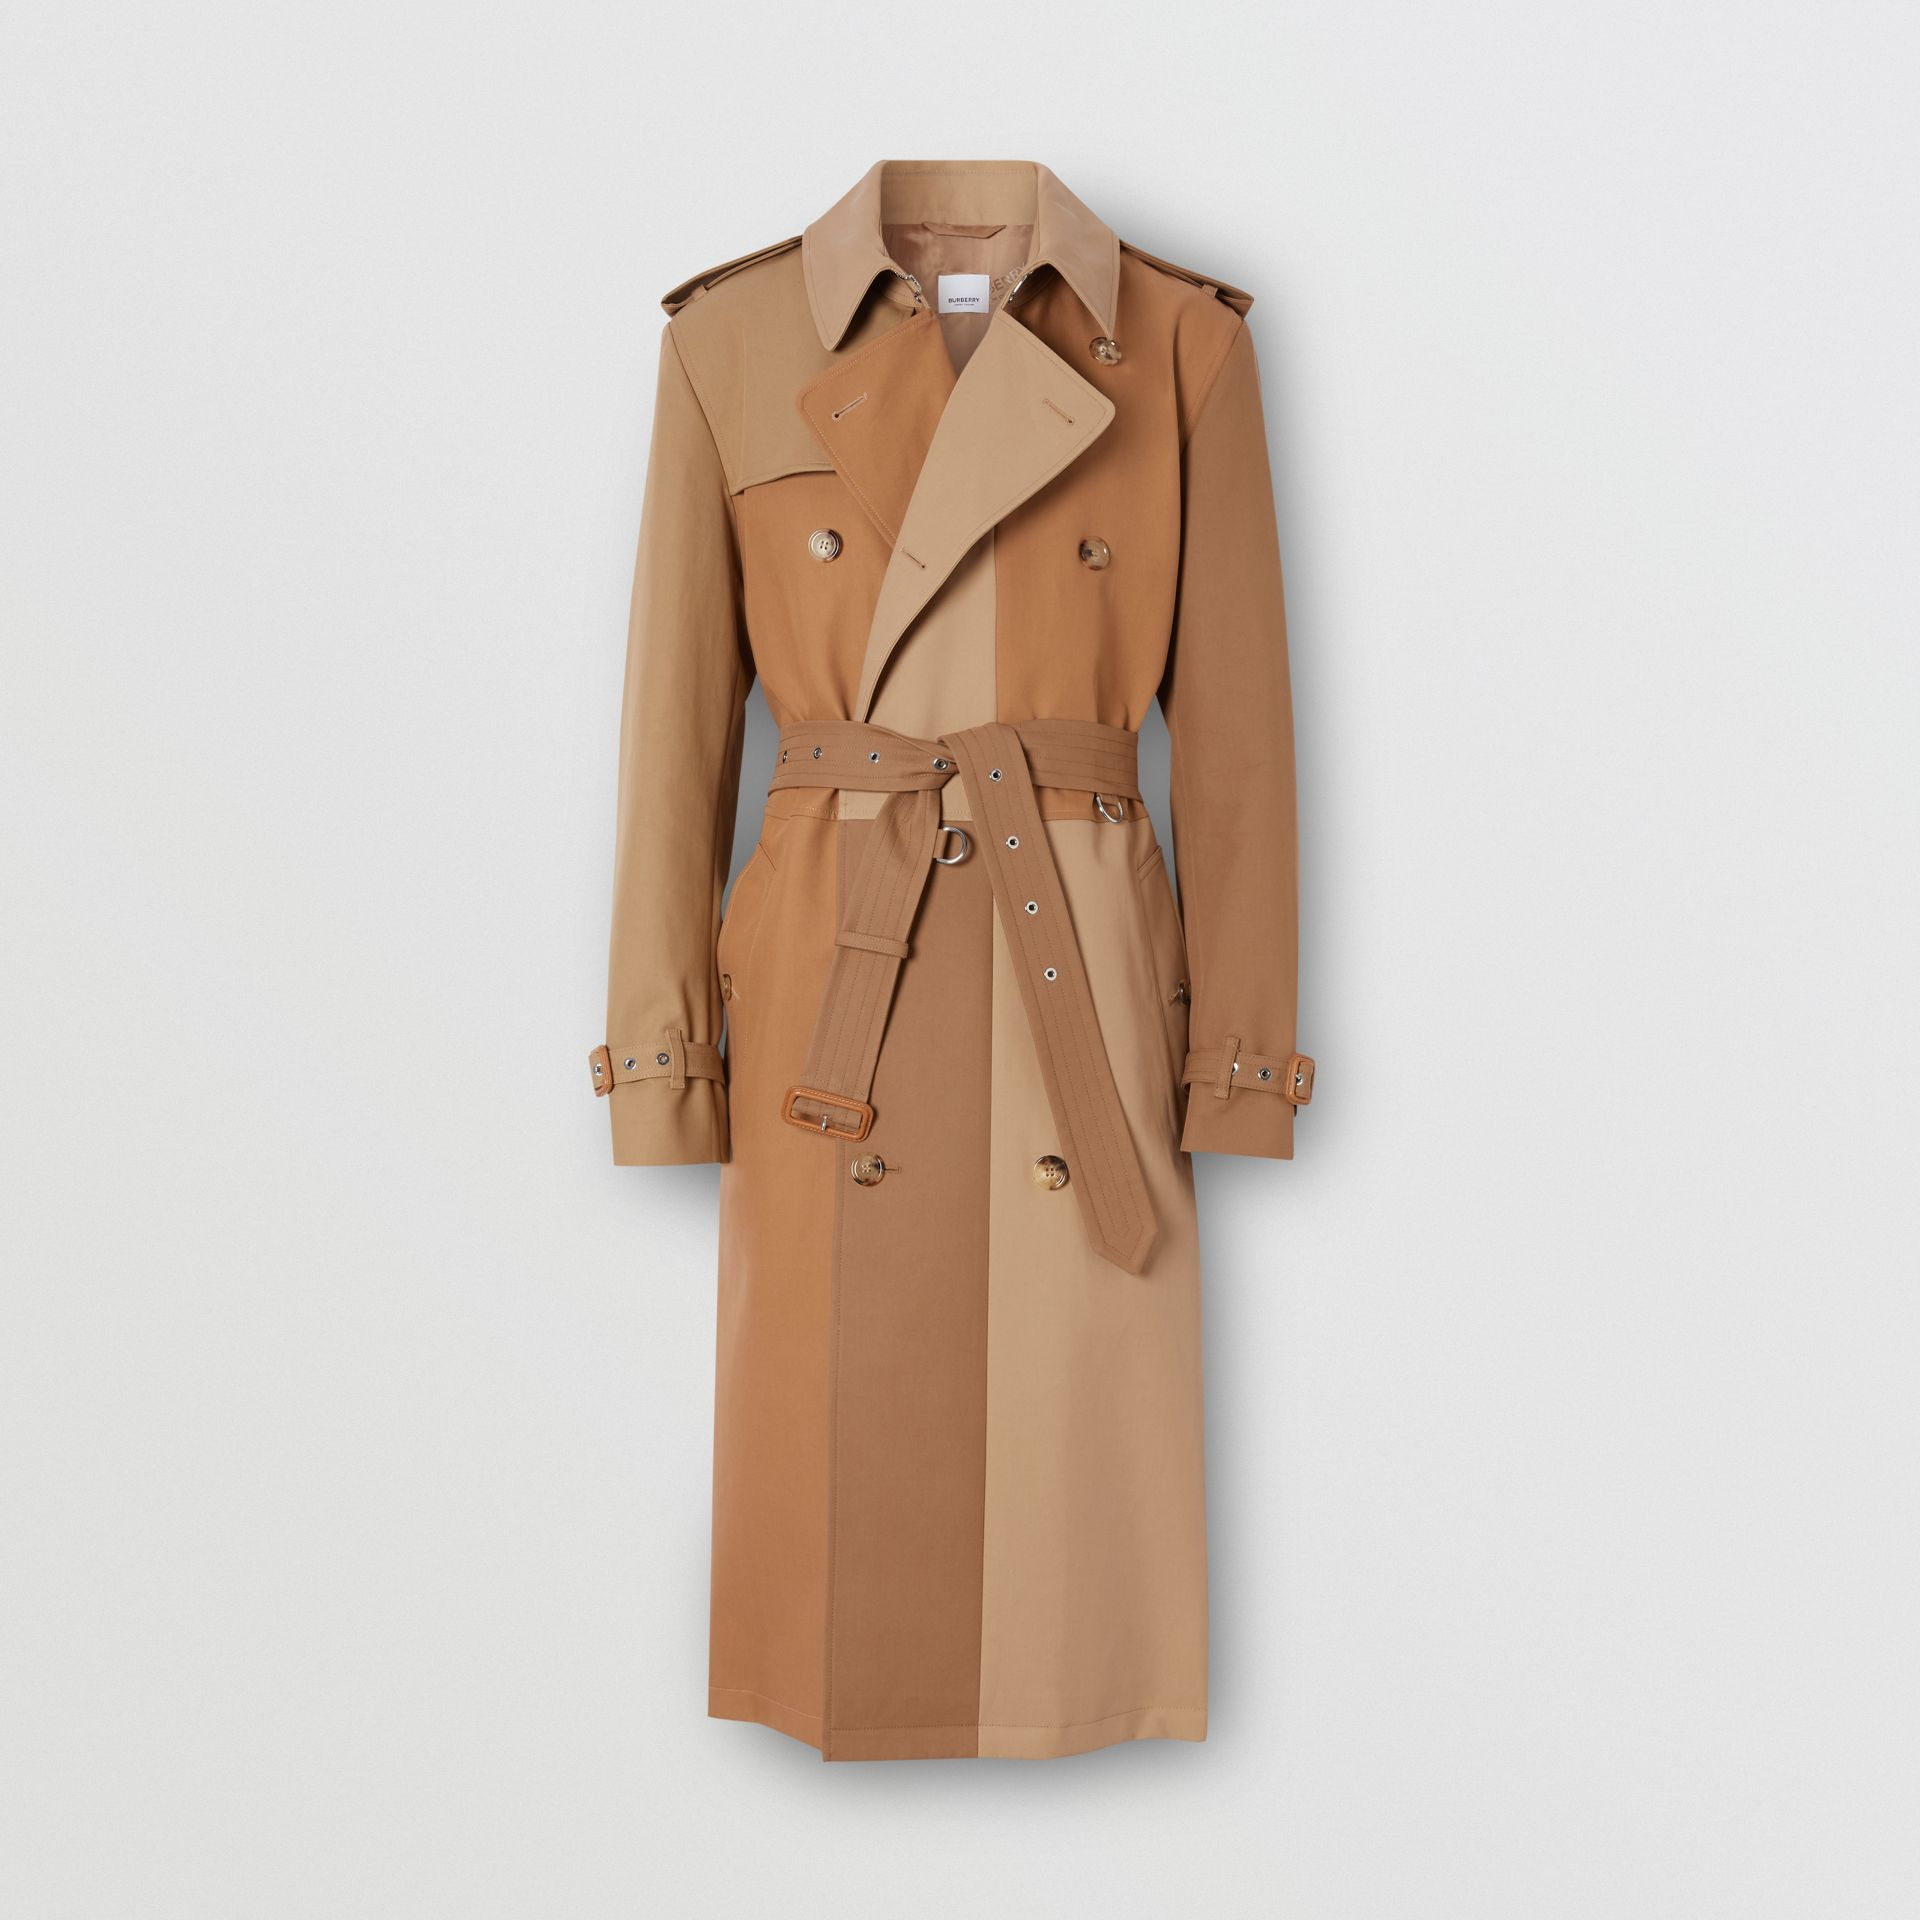 Panelled Cotton Trench Coat in Warm Camel - Men | Burberry Singapore - gallery image 3